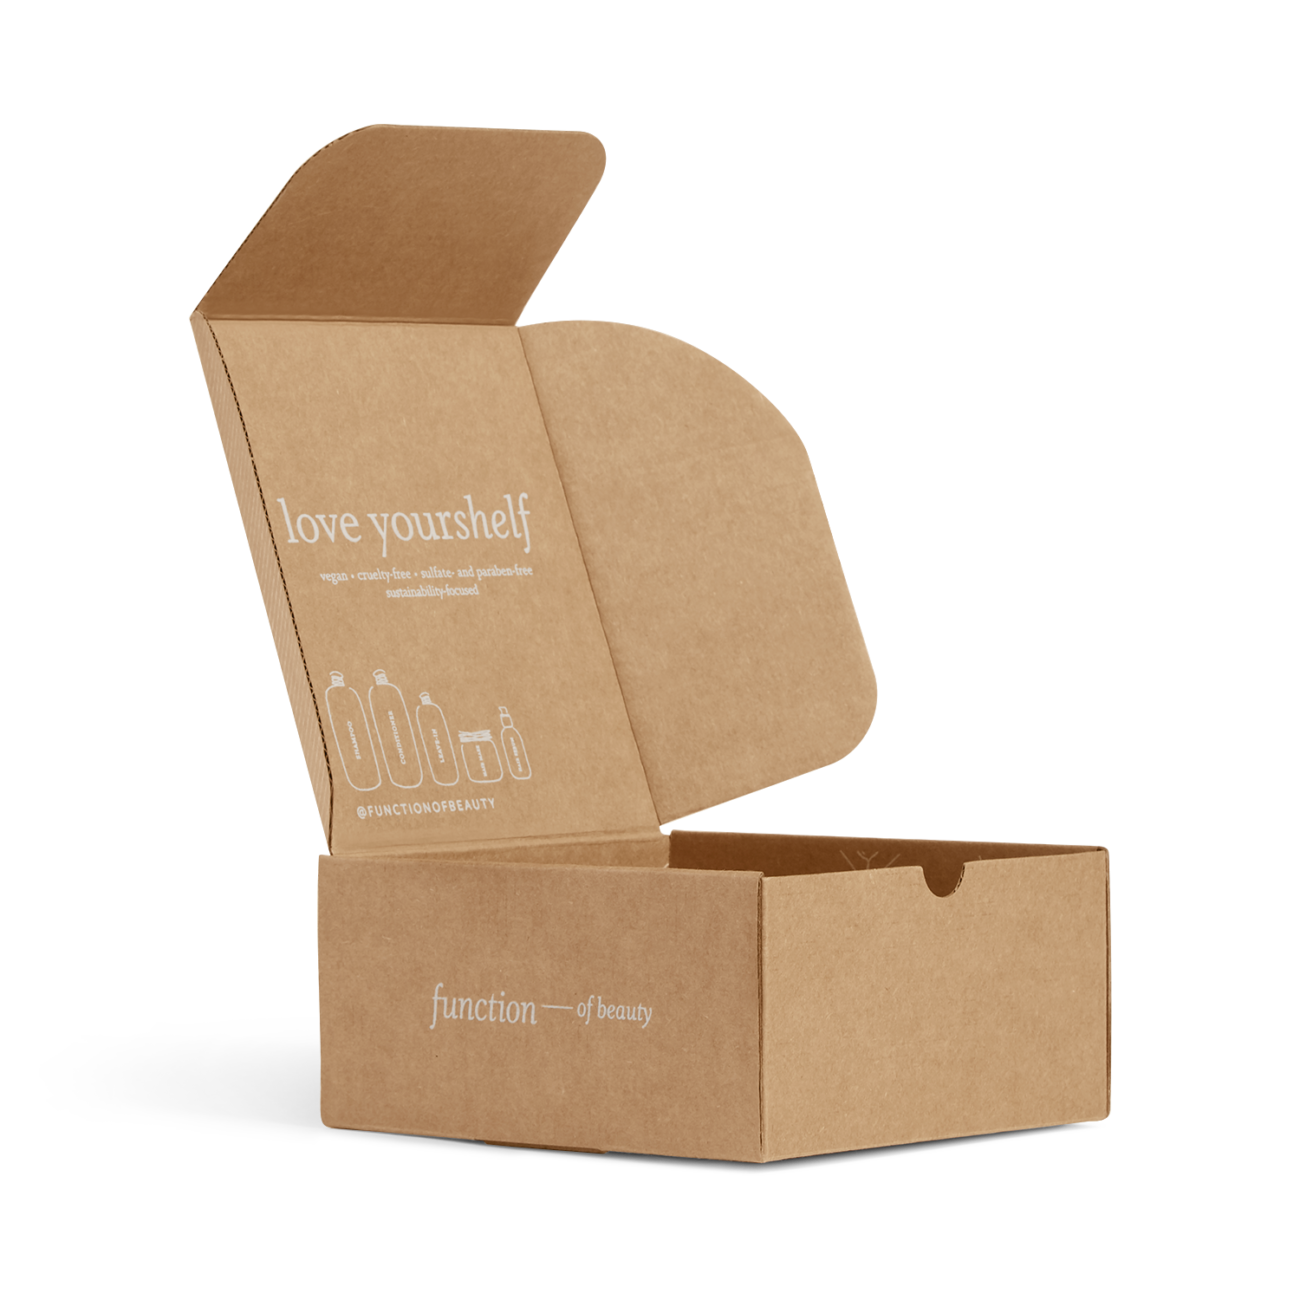 Custom roll end tuck top corrugated mailer box with thumb notch, roll end base, tuck top lid, dust flaps. Flexography on natural kraft liner.